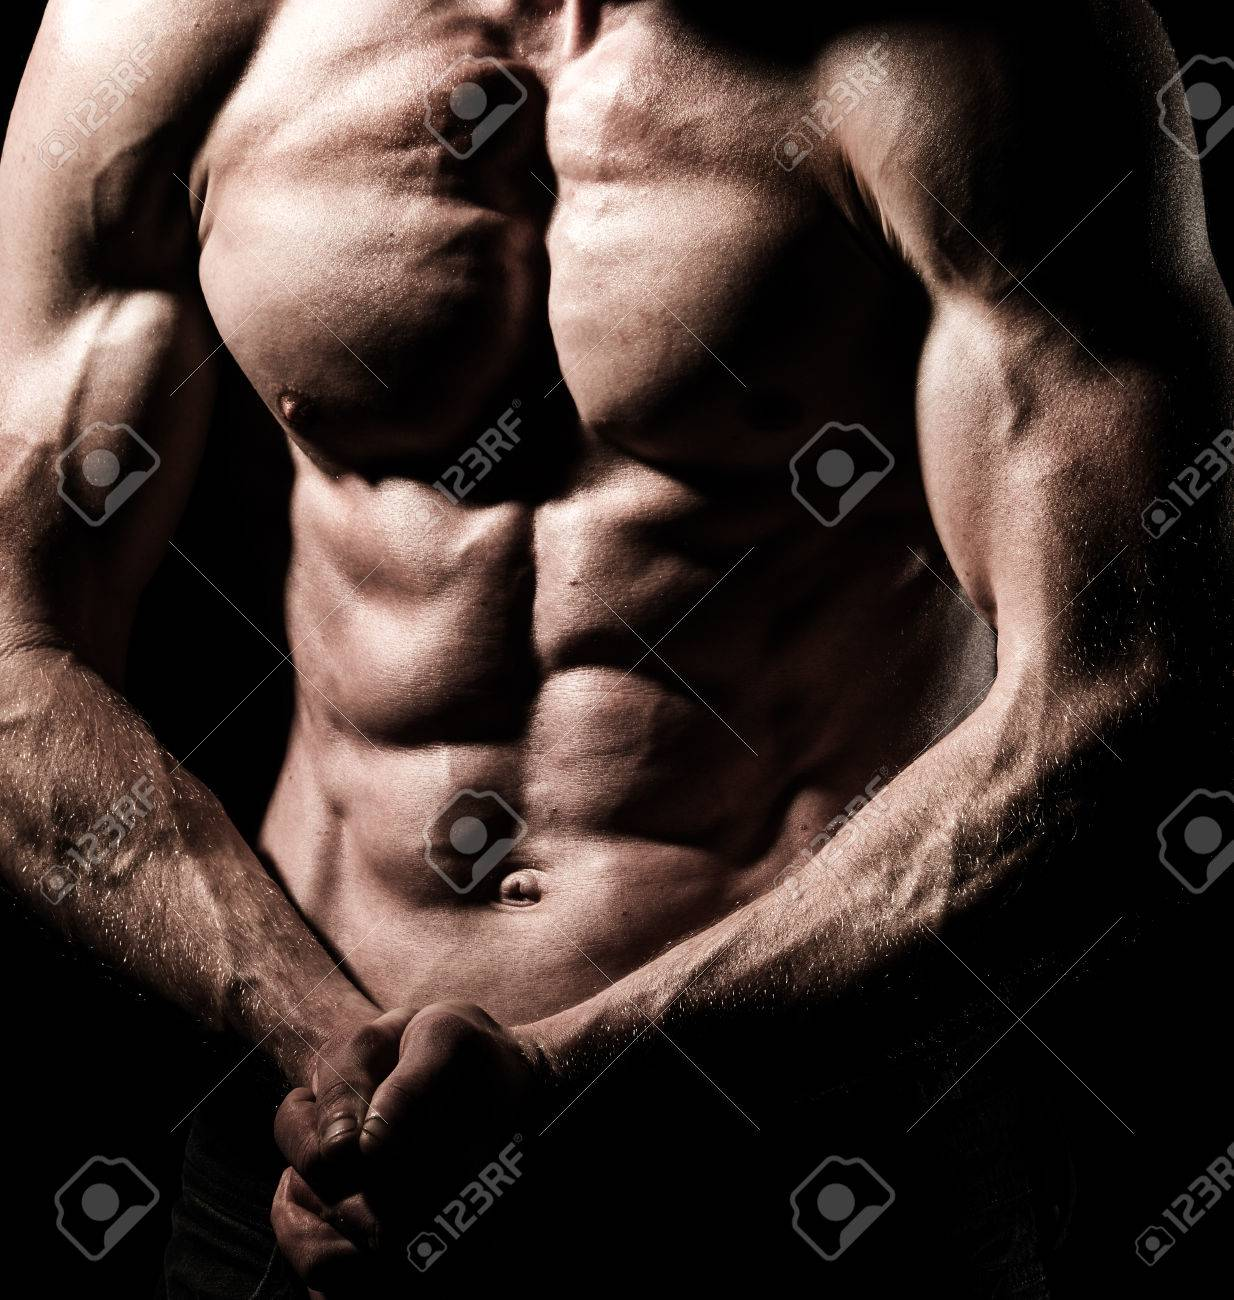 A Very Fit Male Flexing His Muscular Chest Stock Photo Picture And